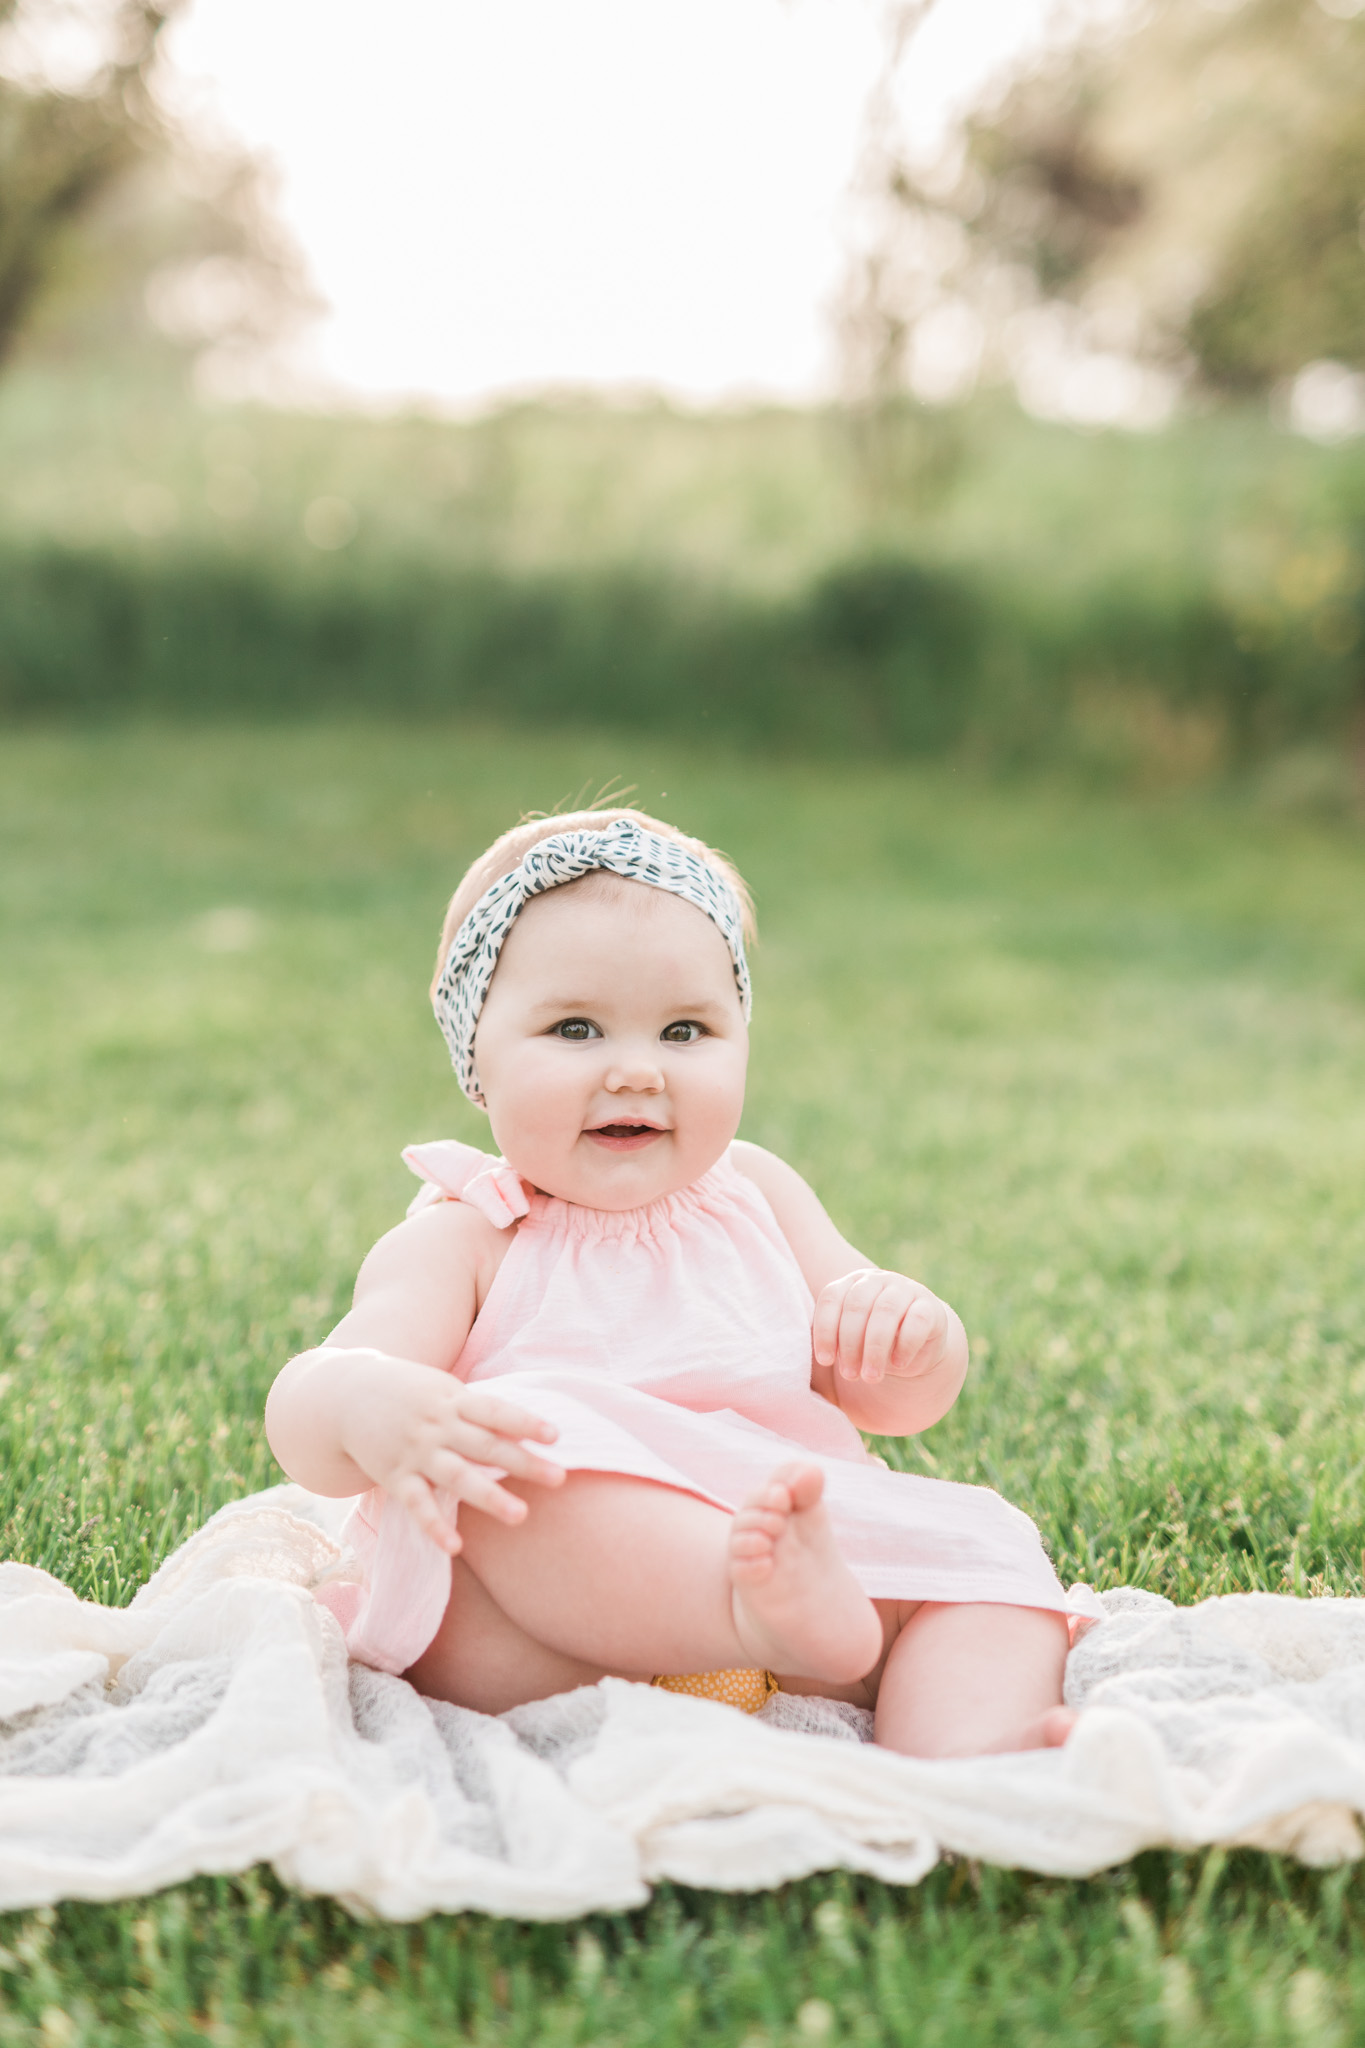 Baby girl 9 month Spring milestone session | Laurenda Marie Photography